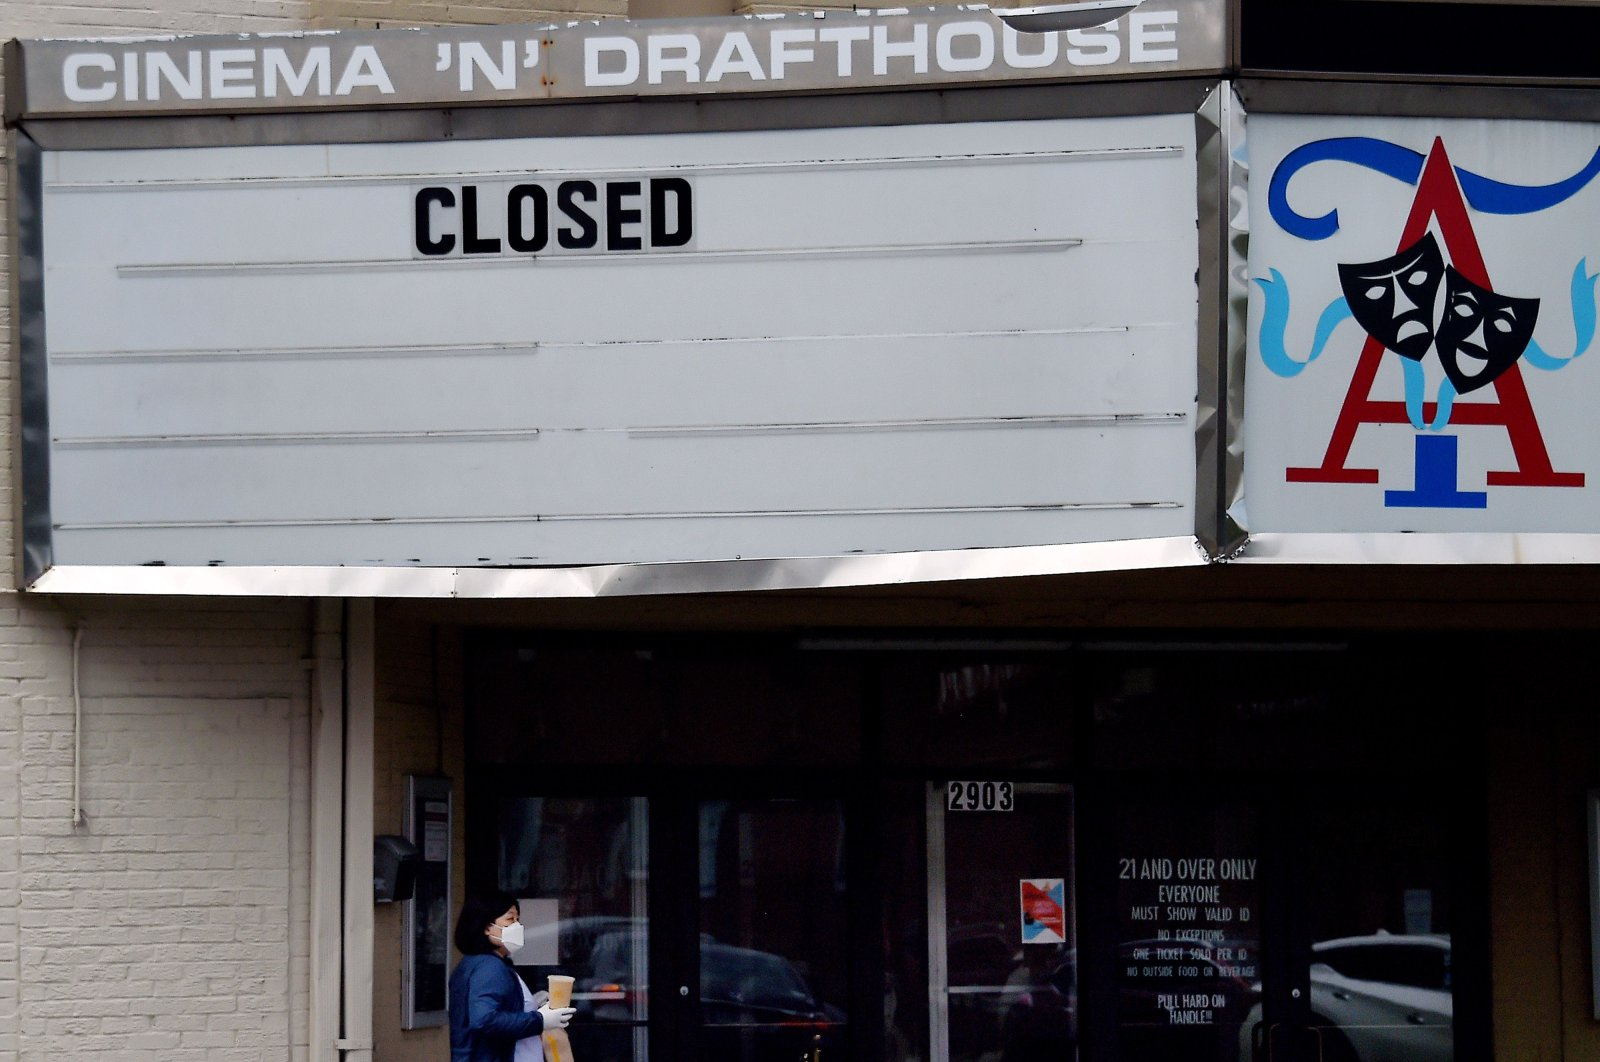 A woman walks past the closed Arlington Cinema and Drafthouse movie theater amid the coronavirus pandemic in Arlington, Virginia, May 13, 2020. (AFP Photo)